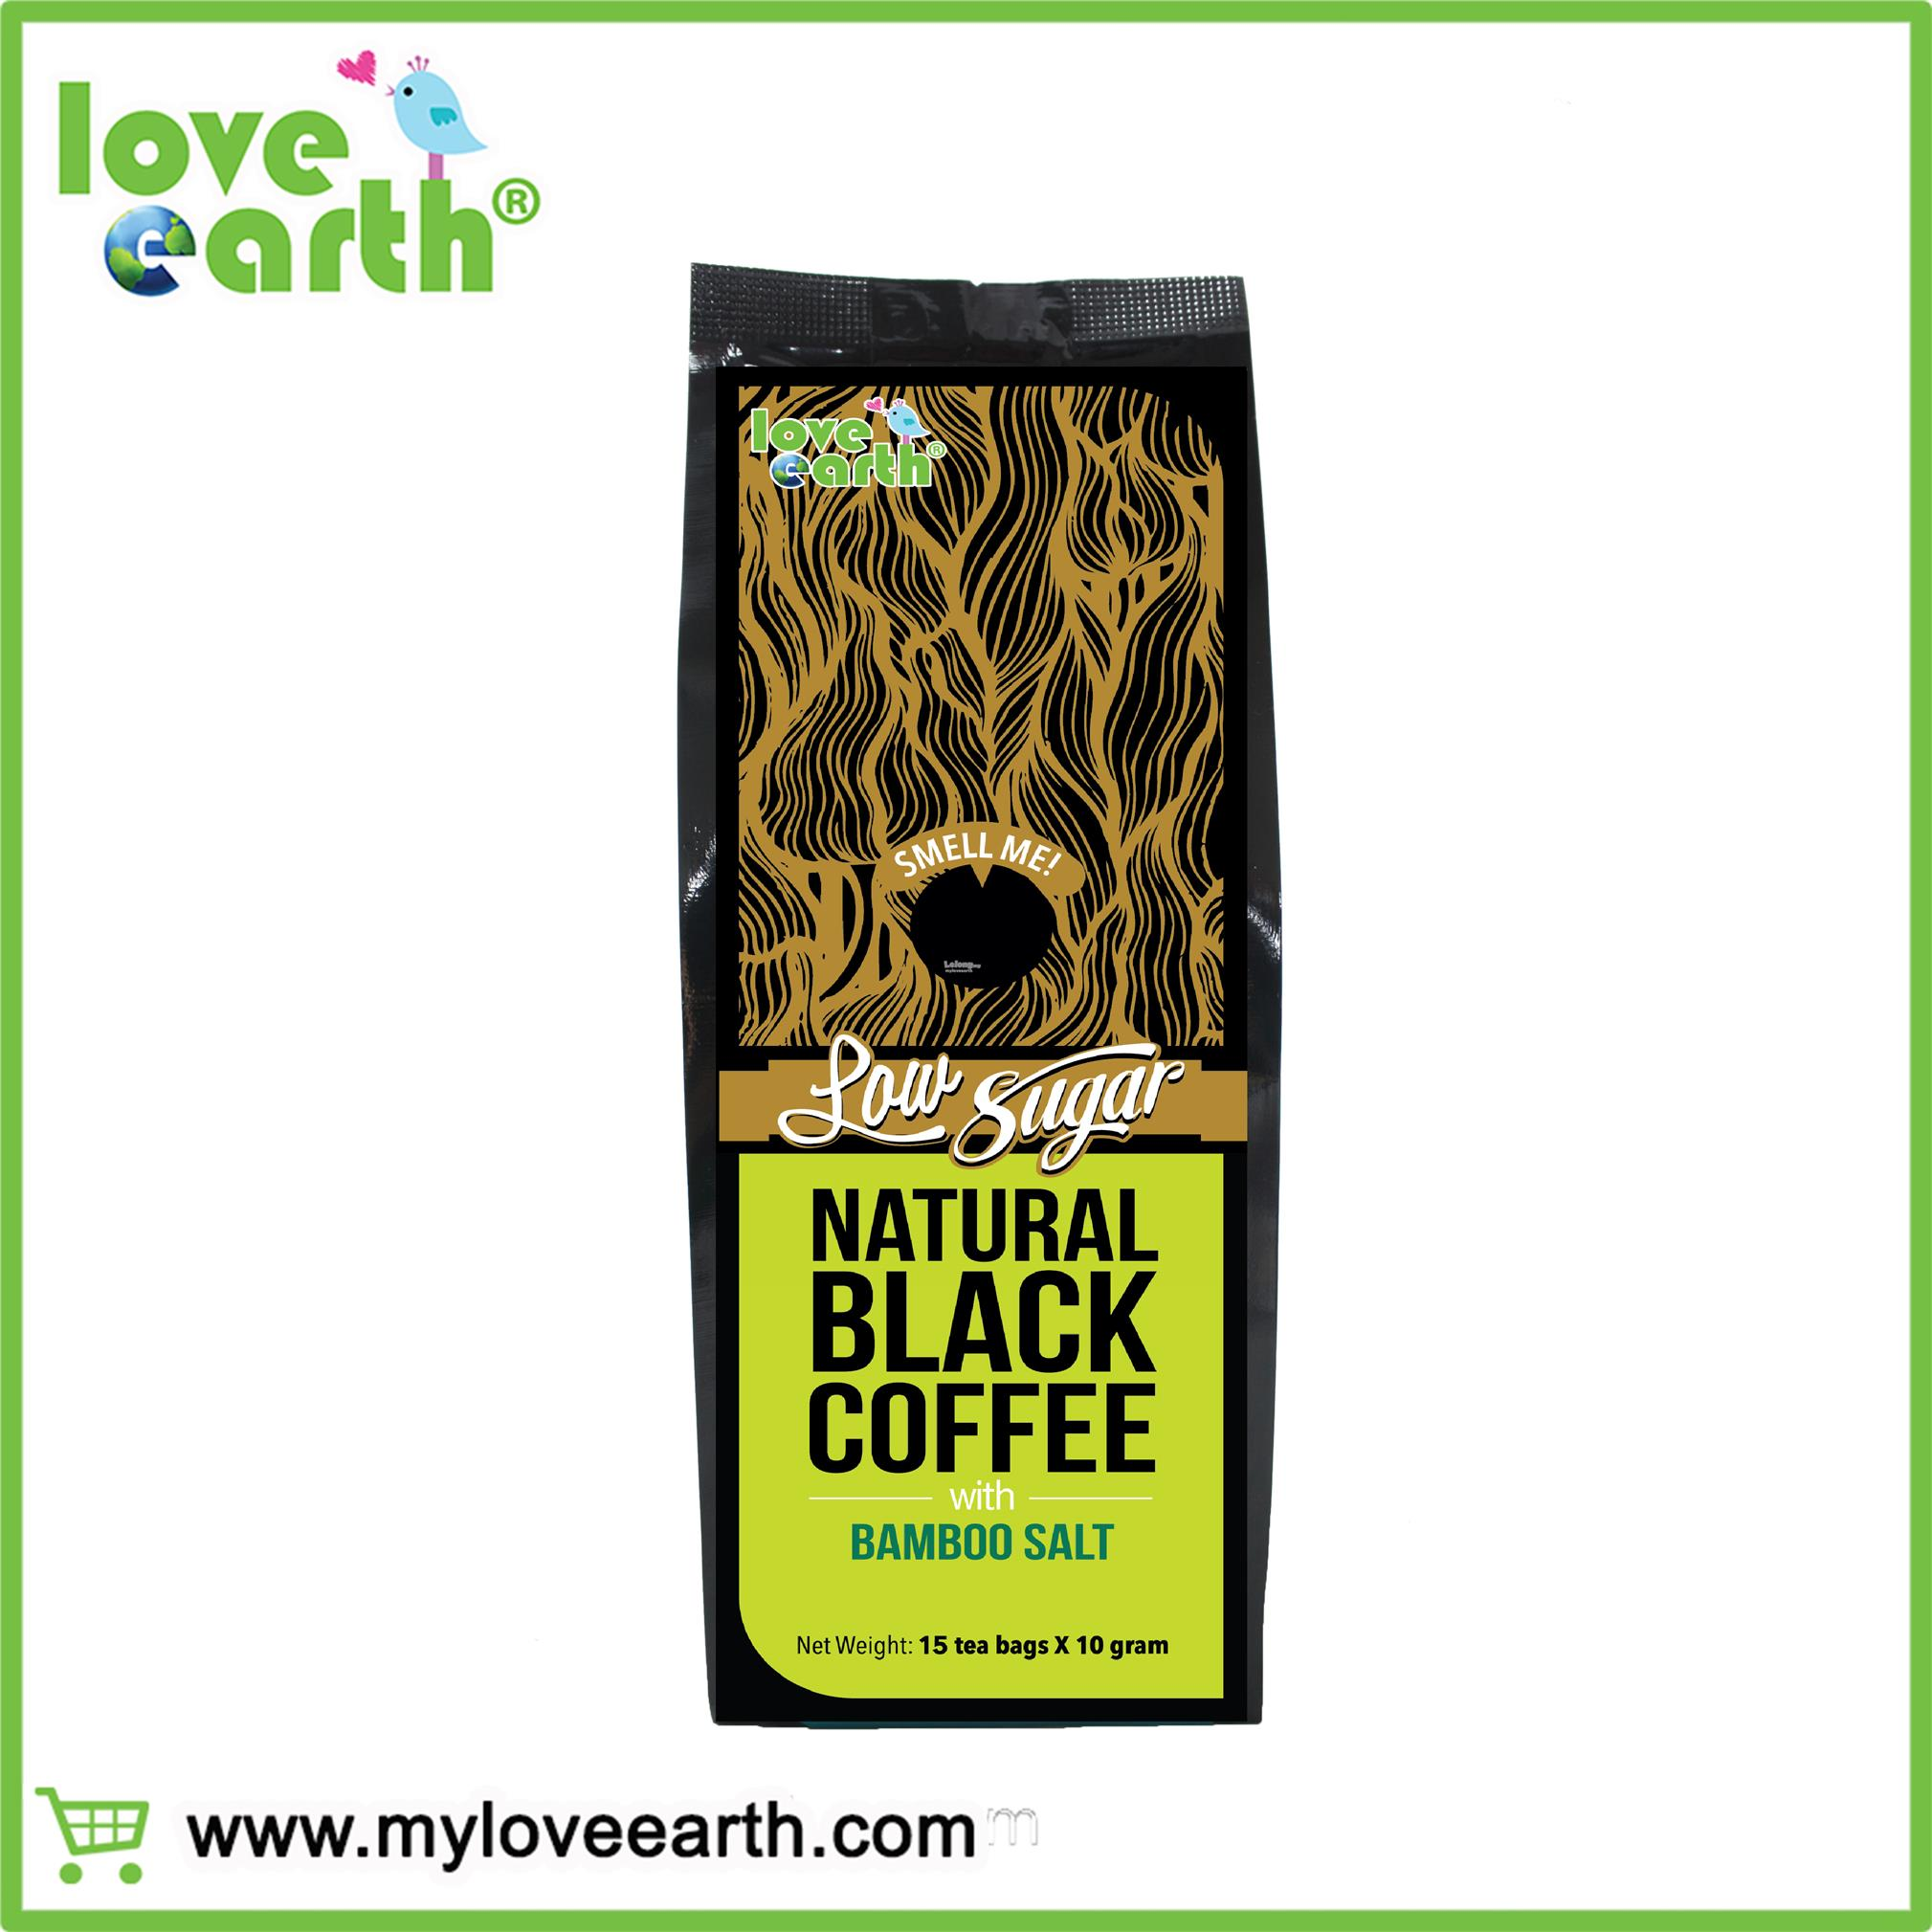 LOVE EARTH NATURAL LOW SUGAR BLACK COFFEE WITH BAMBOO SALT 10GX15